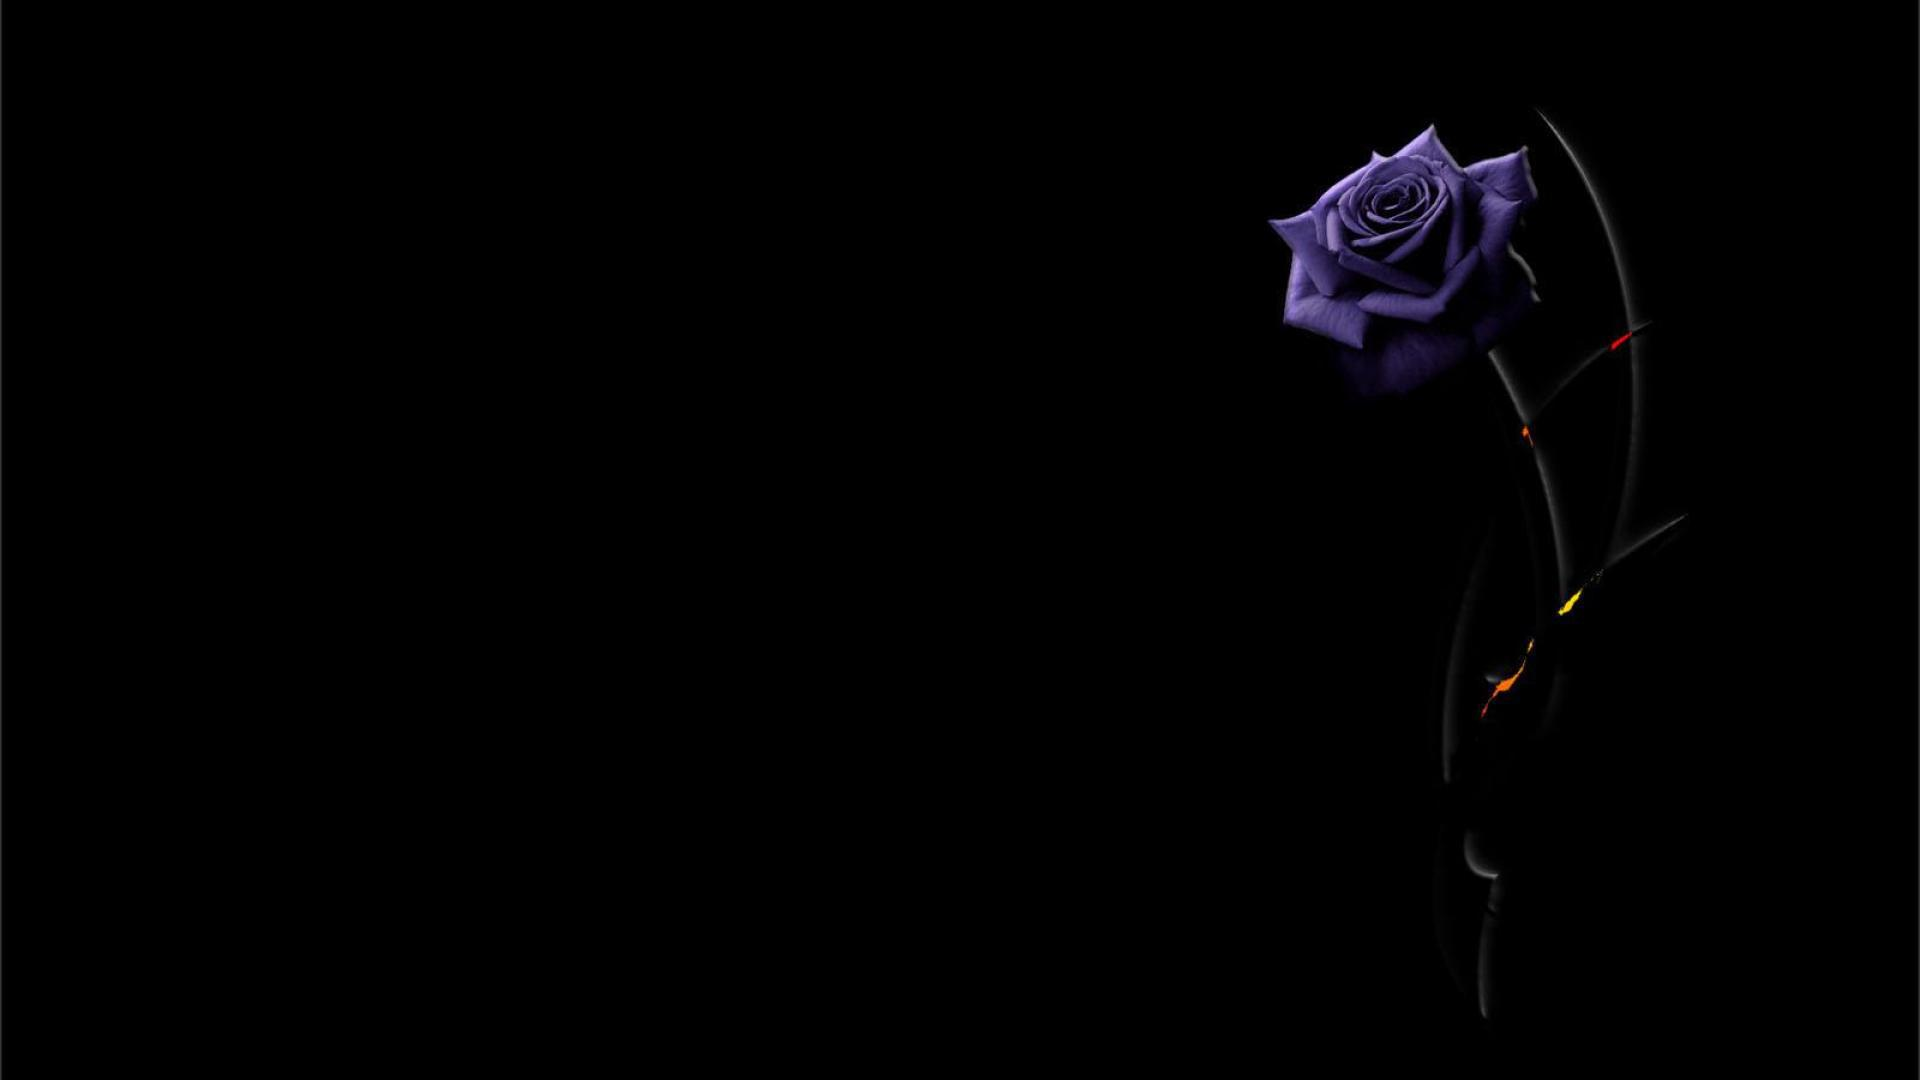 purple rose on a black background wallpapers and images   wallpapers 1920x1080